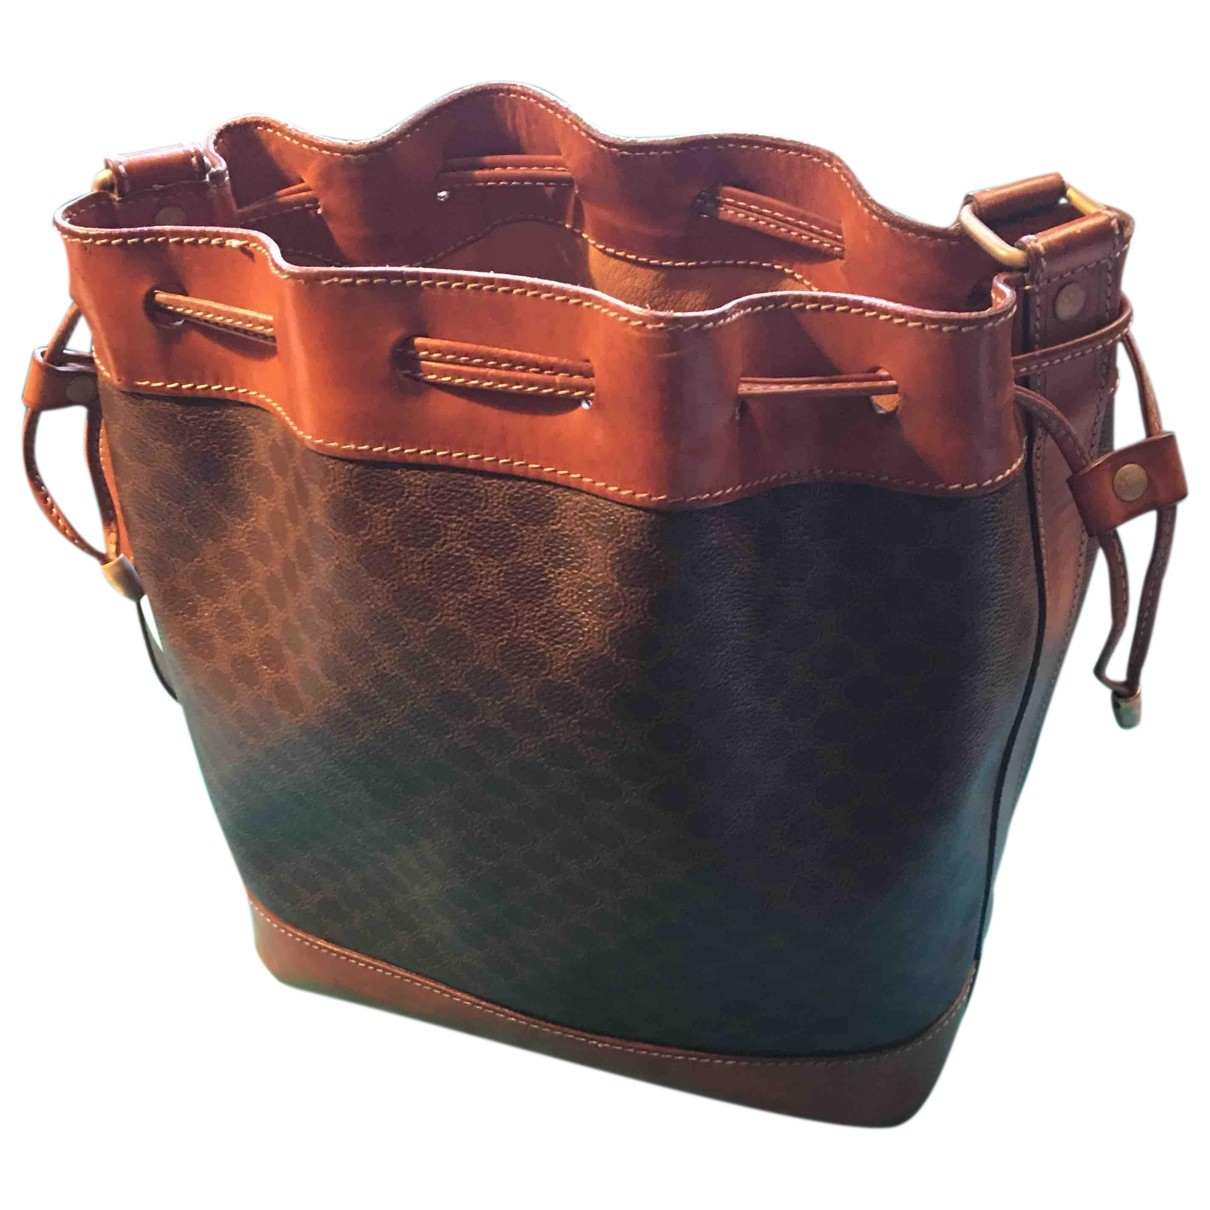 Celine \N Cloth handbag for Women \N